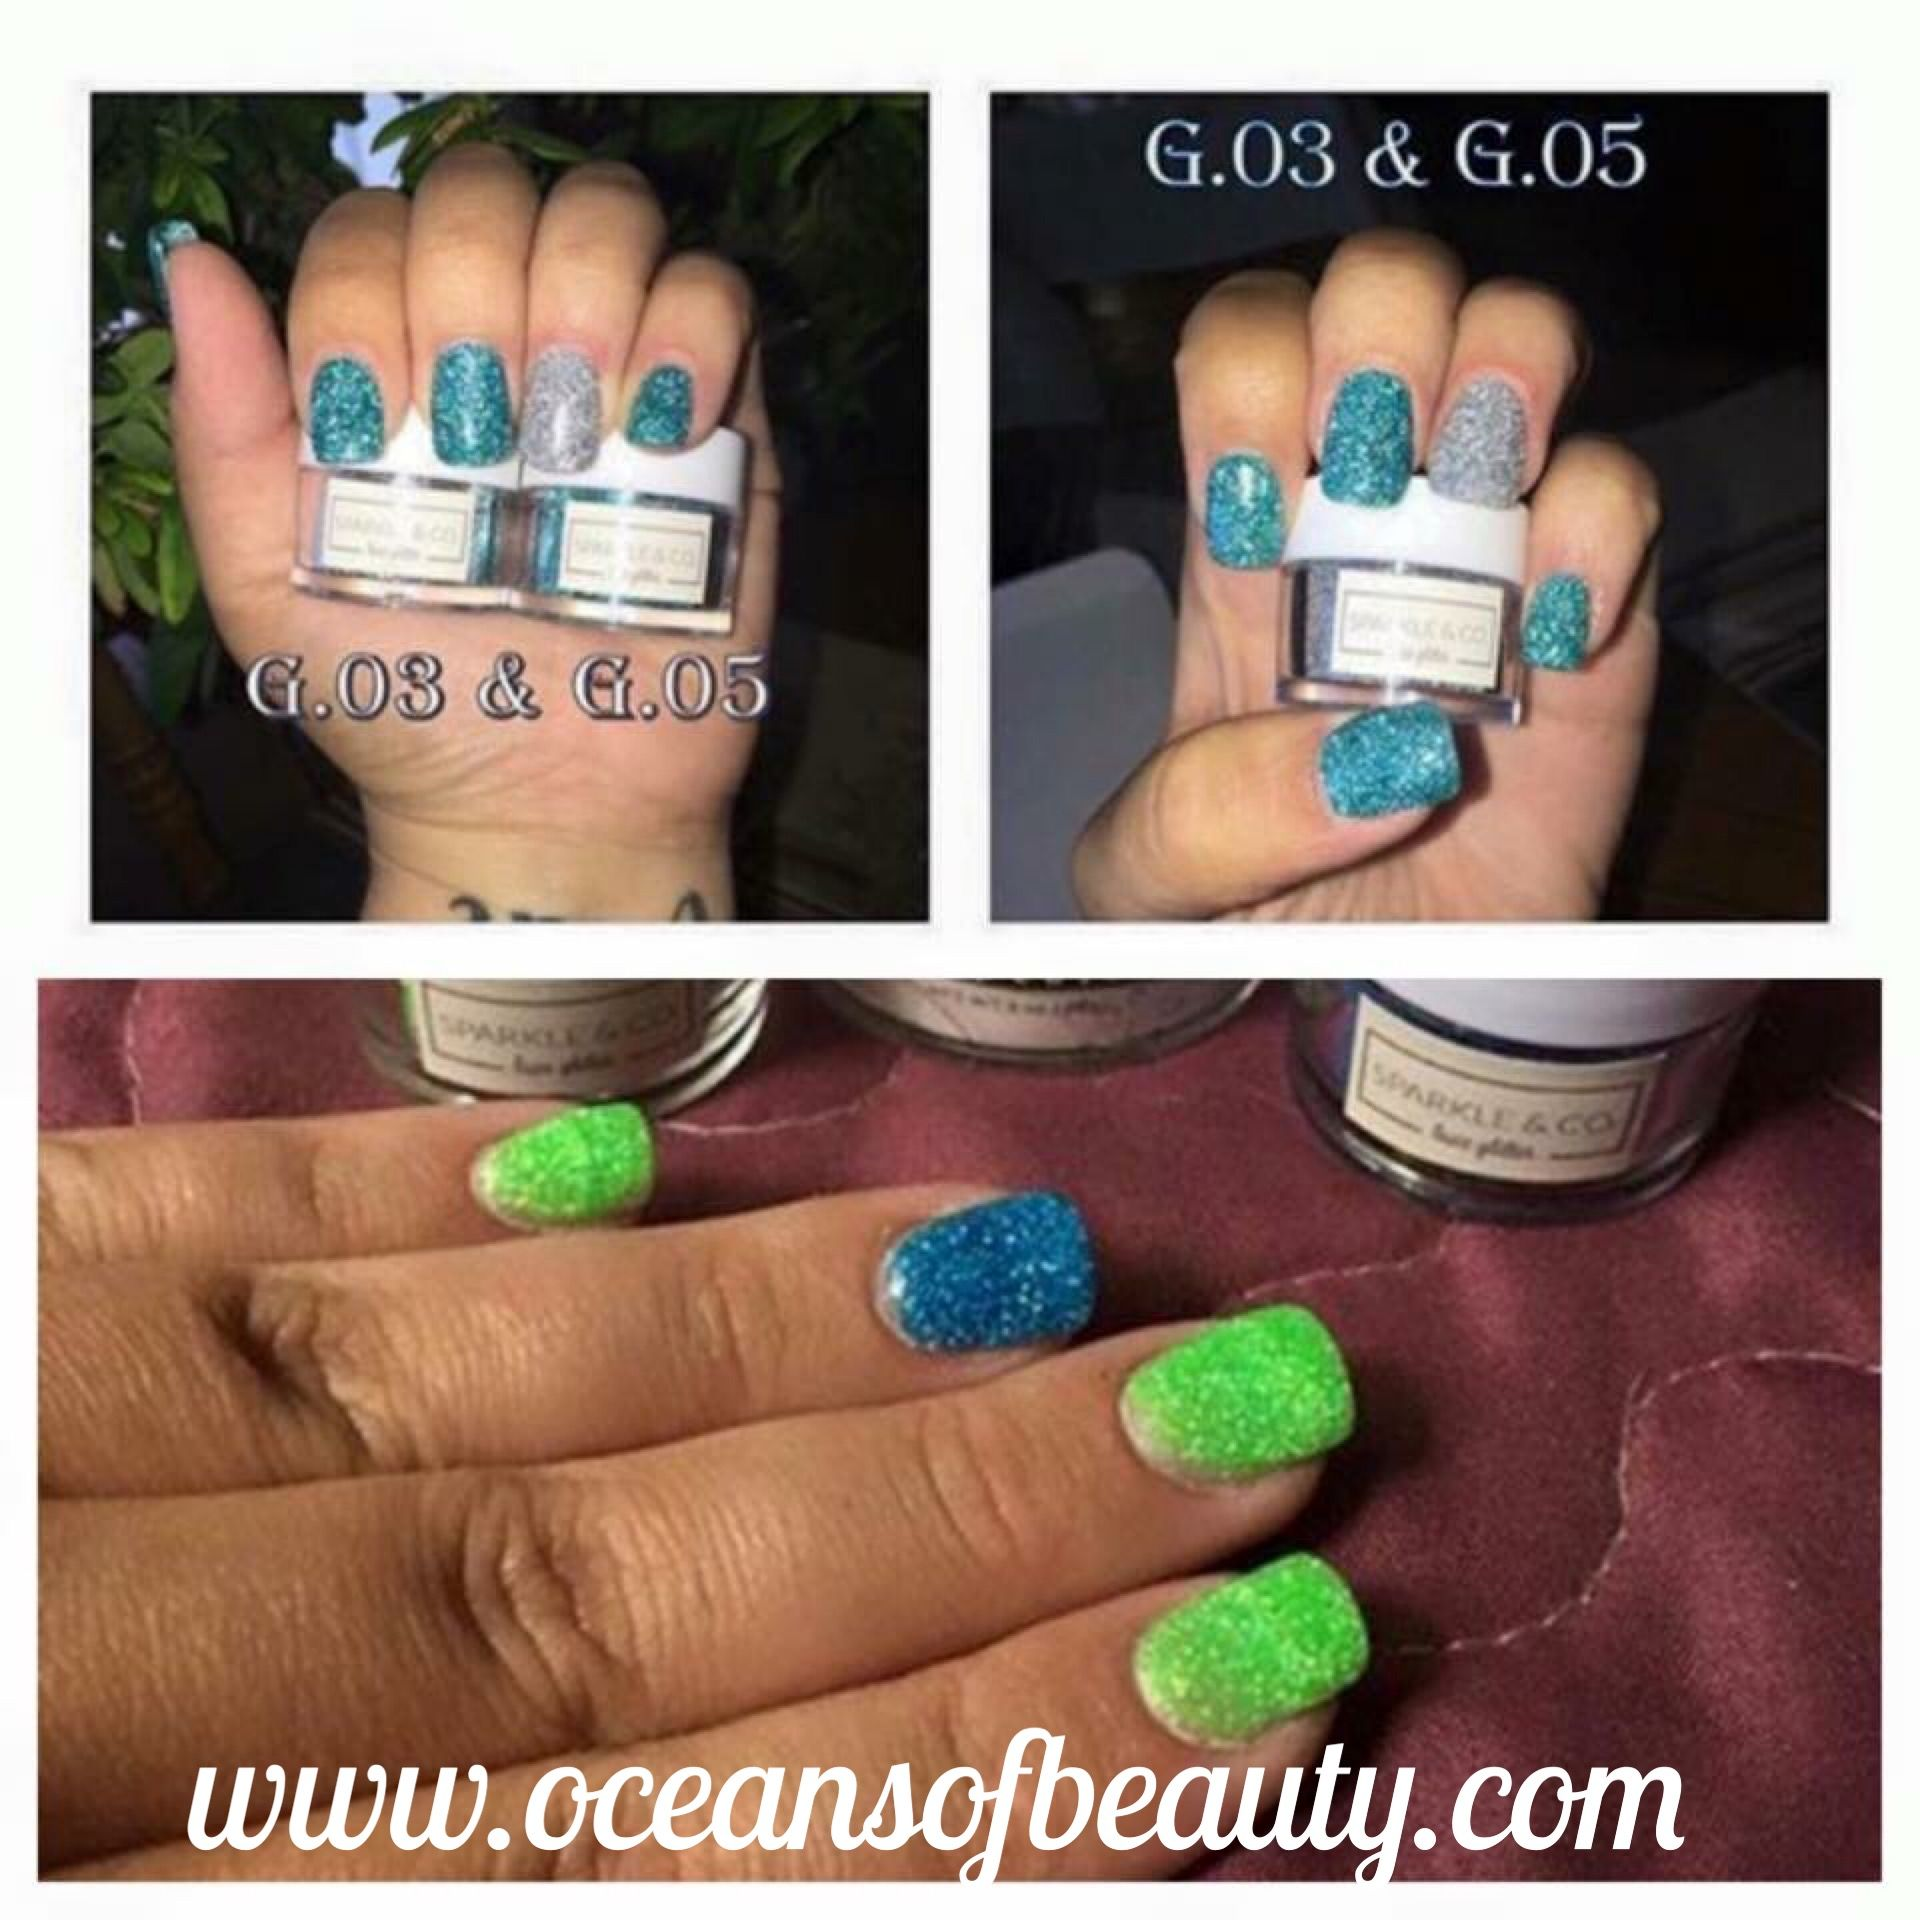 G.03 & G.05 from Sparkle & Co. mixed with Crystal Clear EZdip Gel ...